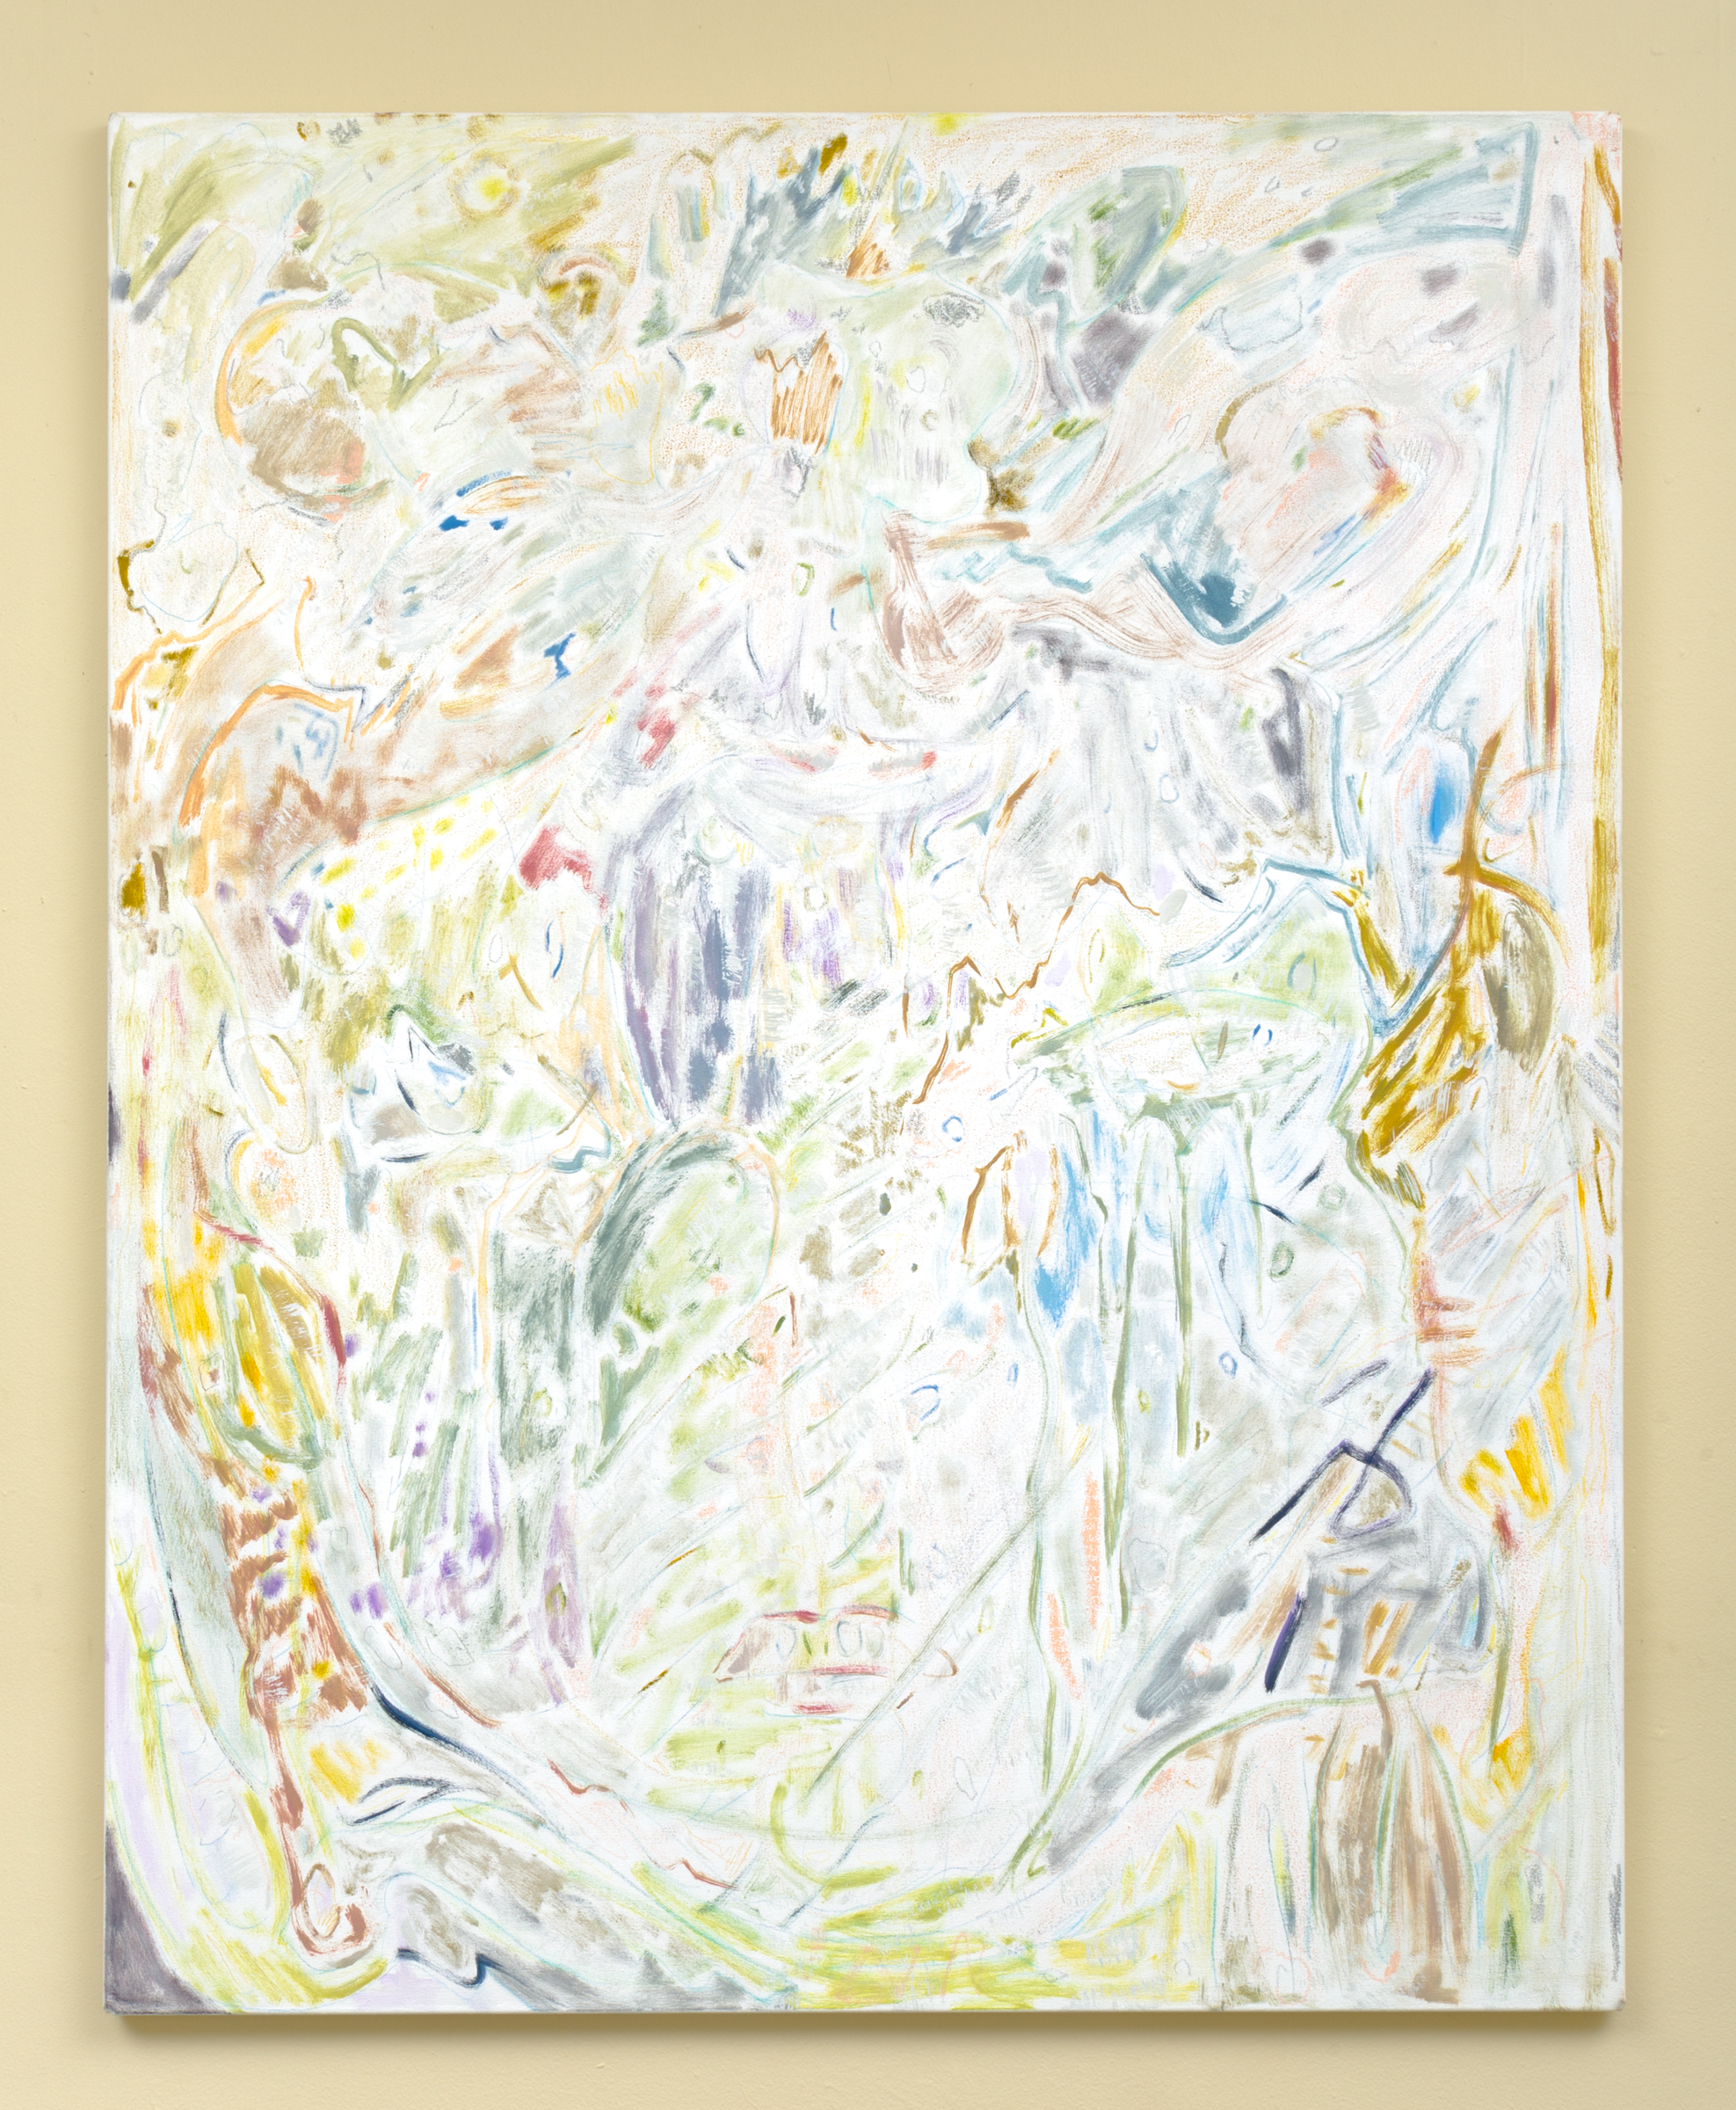 SWAN TIME (grasses) , 2017. Oil, pastels, and colored pencil on canvas. 60.5 x 48.5 in.